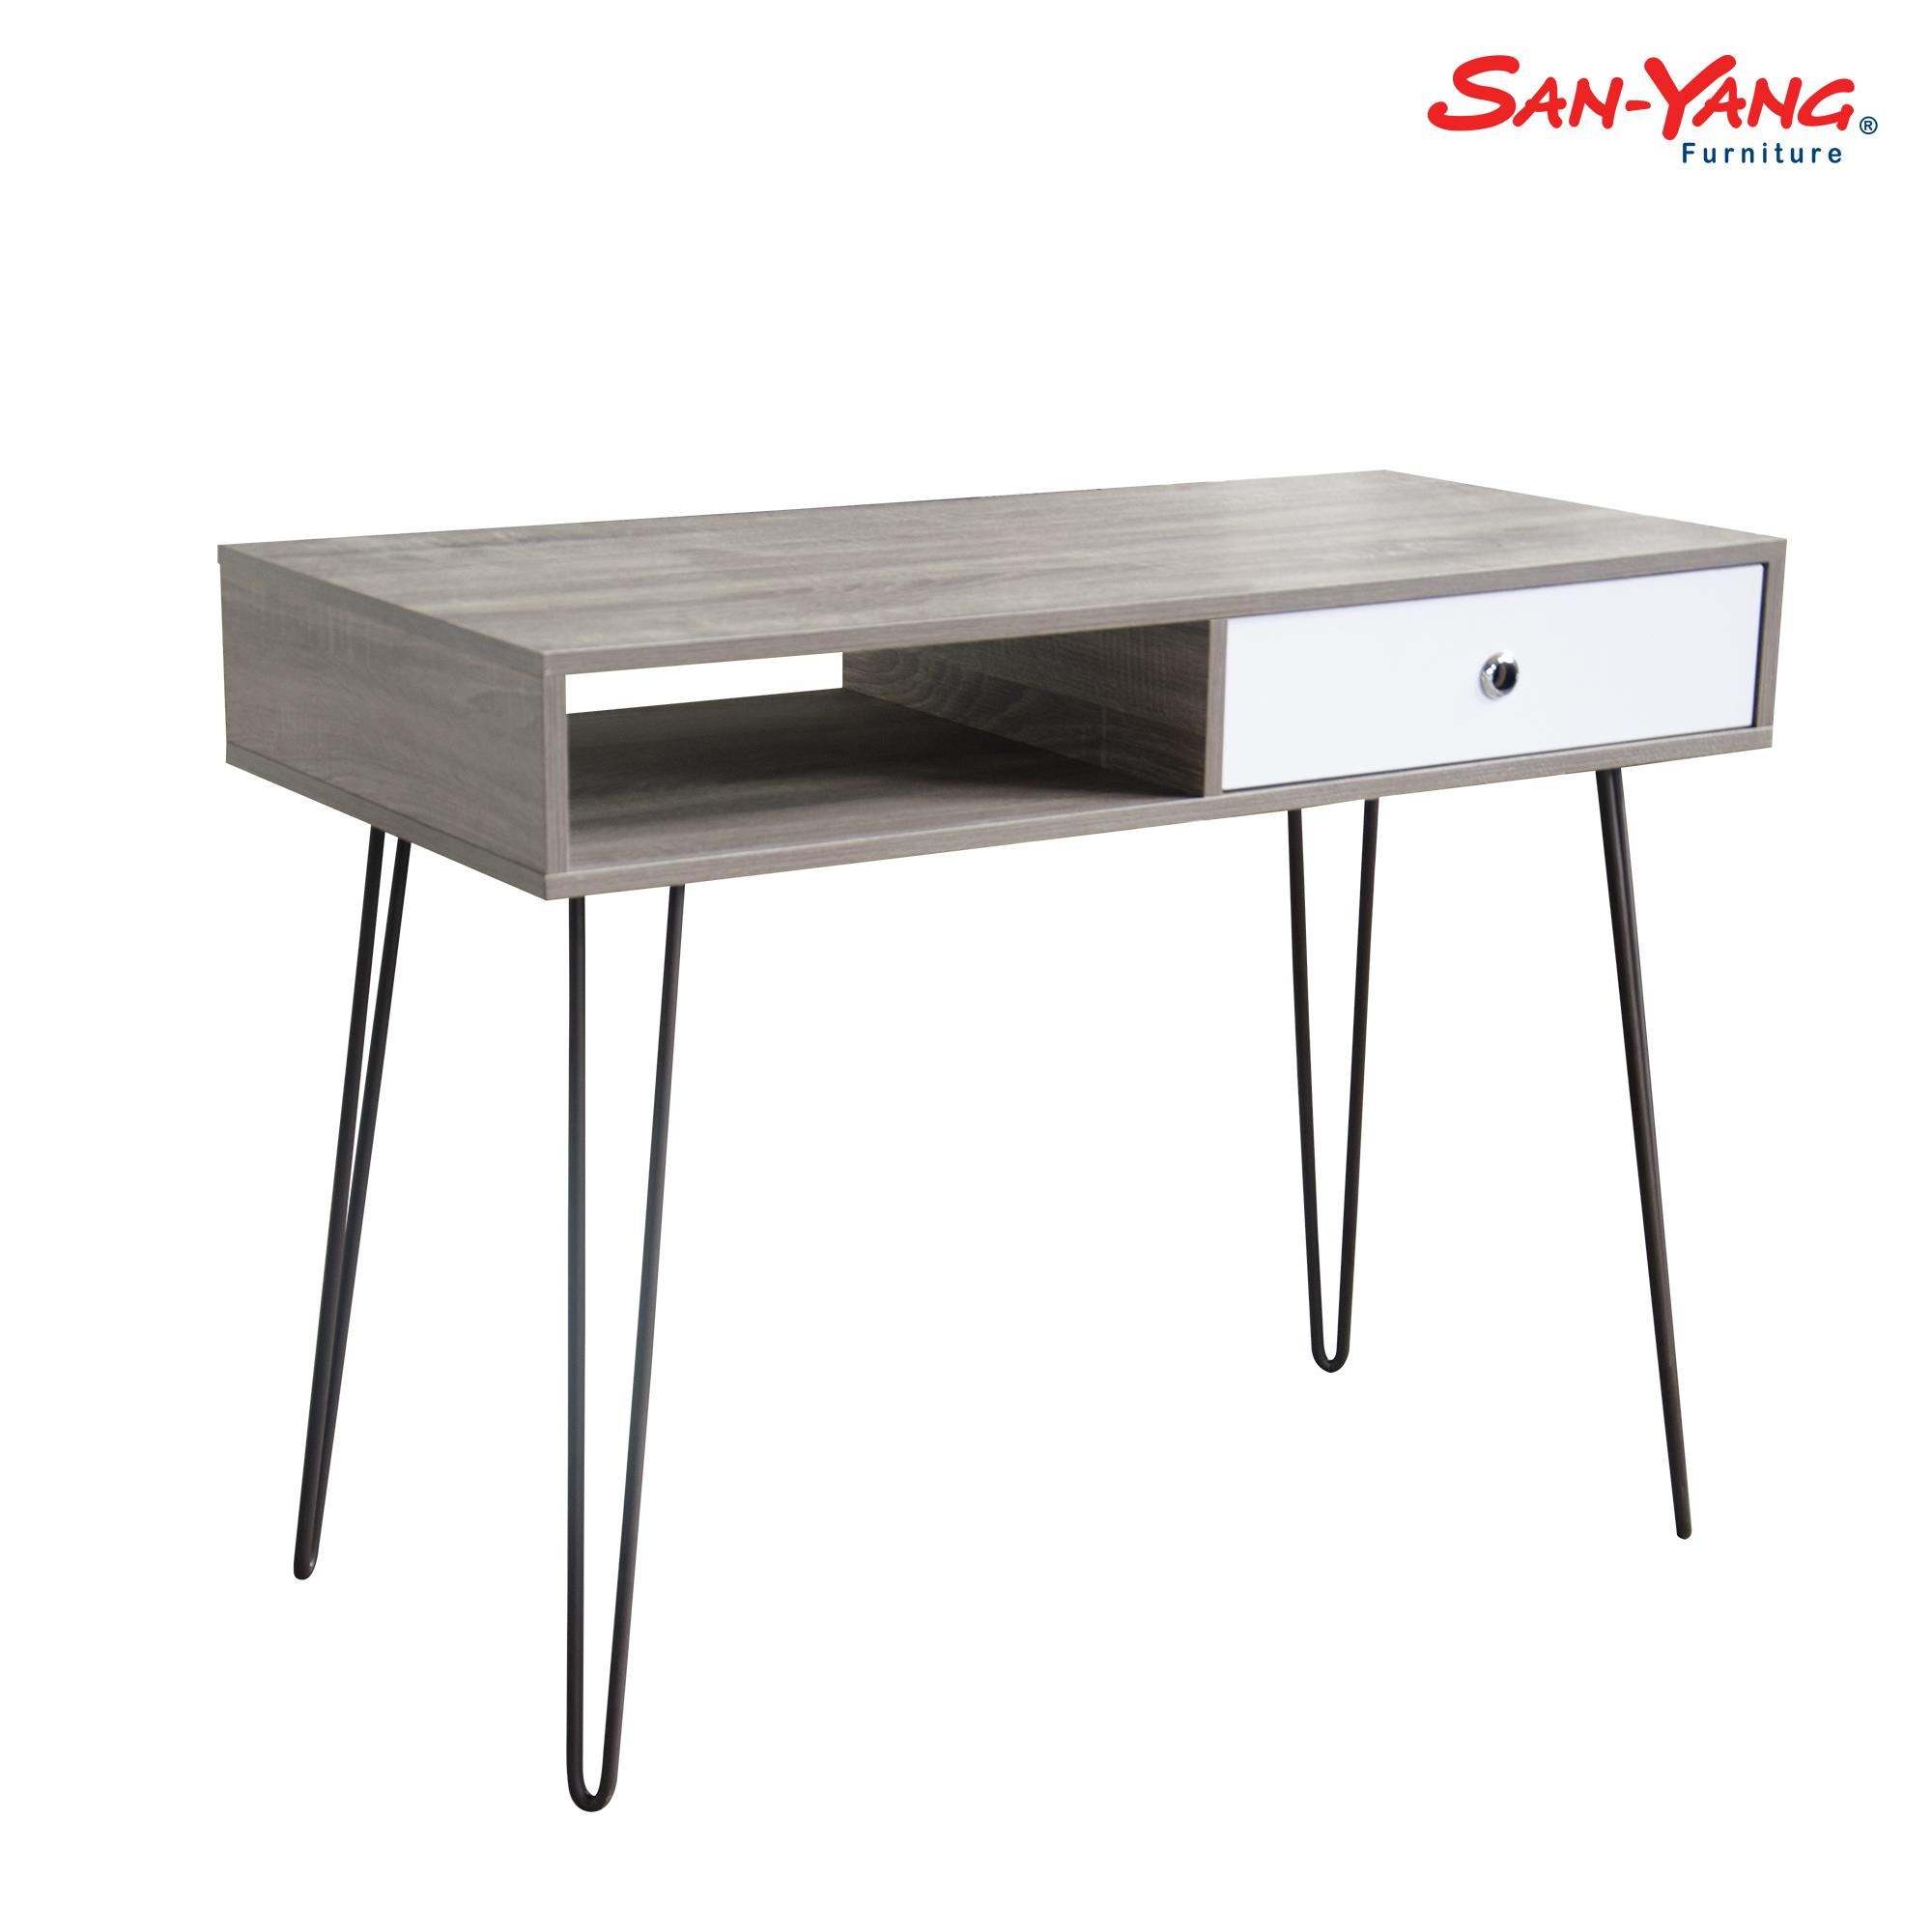 fice Table for sale fice Desk prices brands & review in